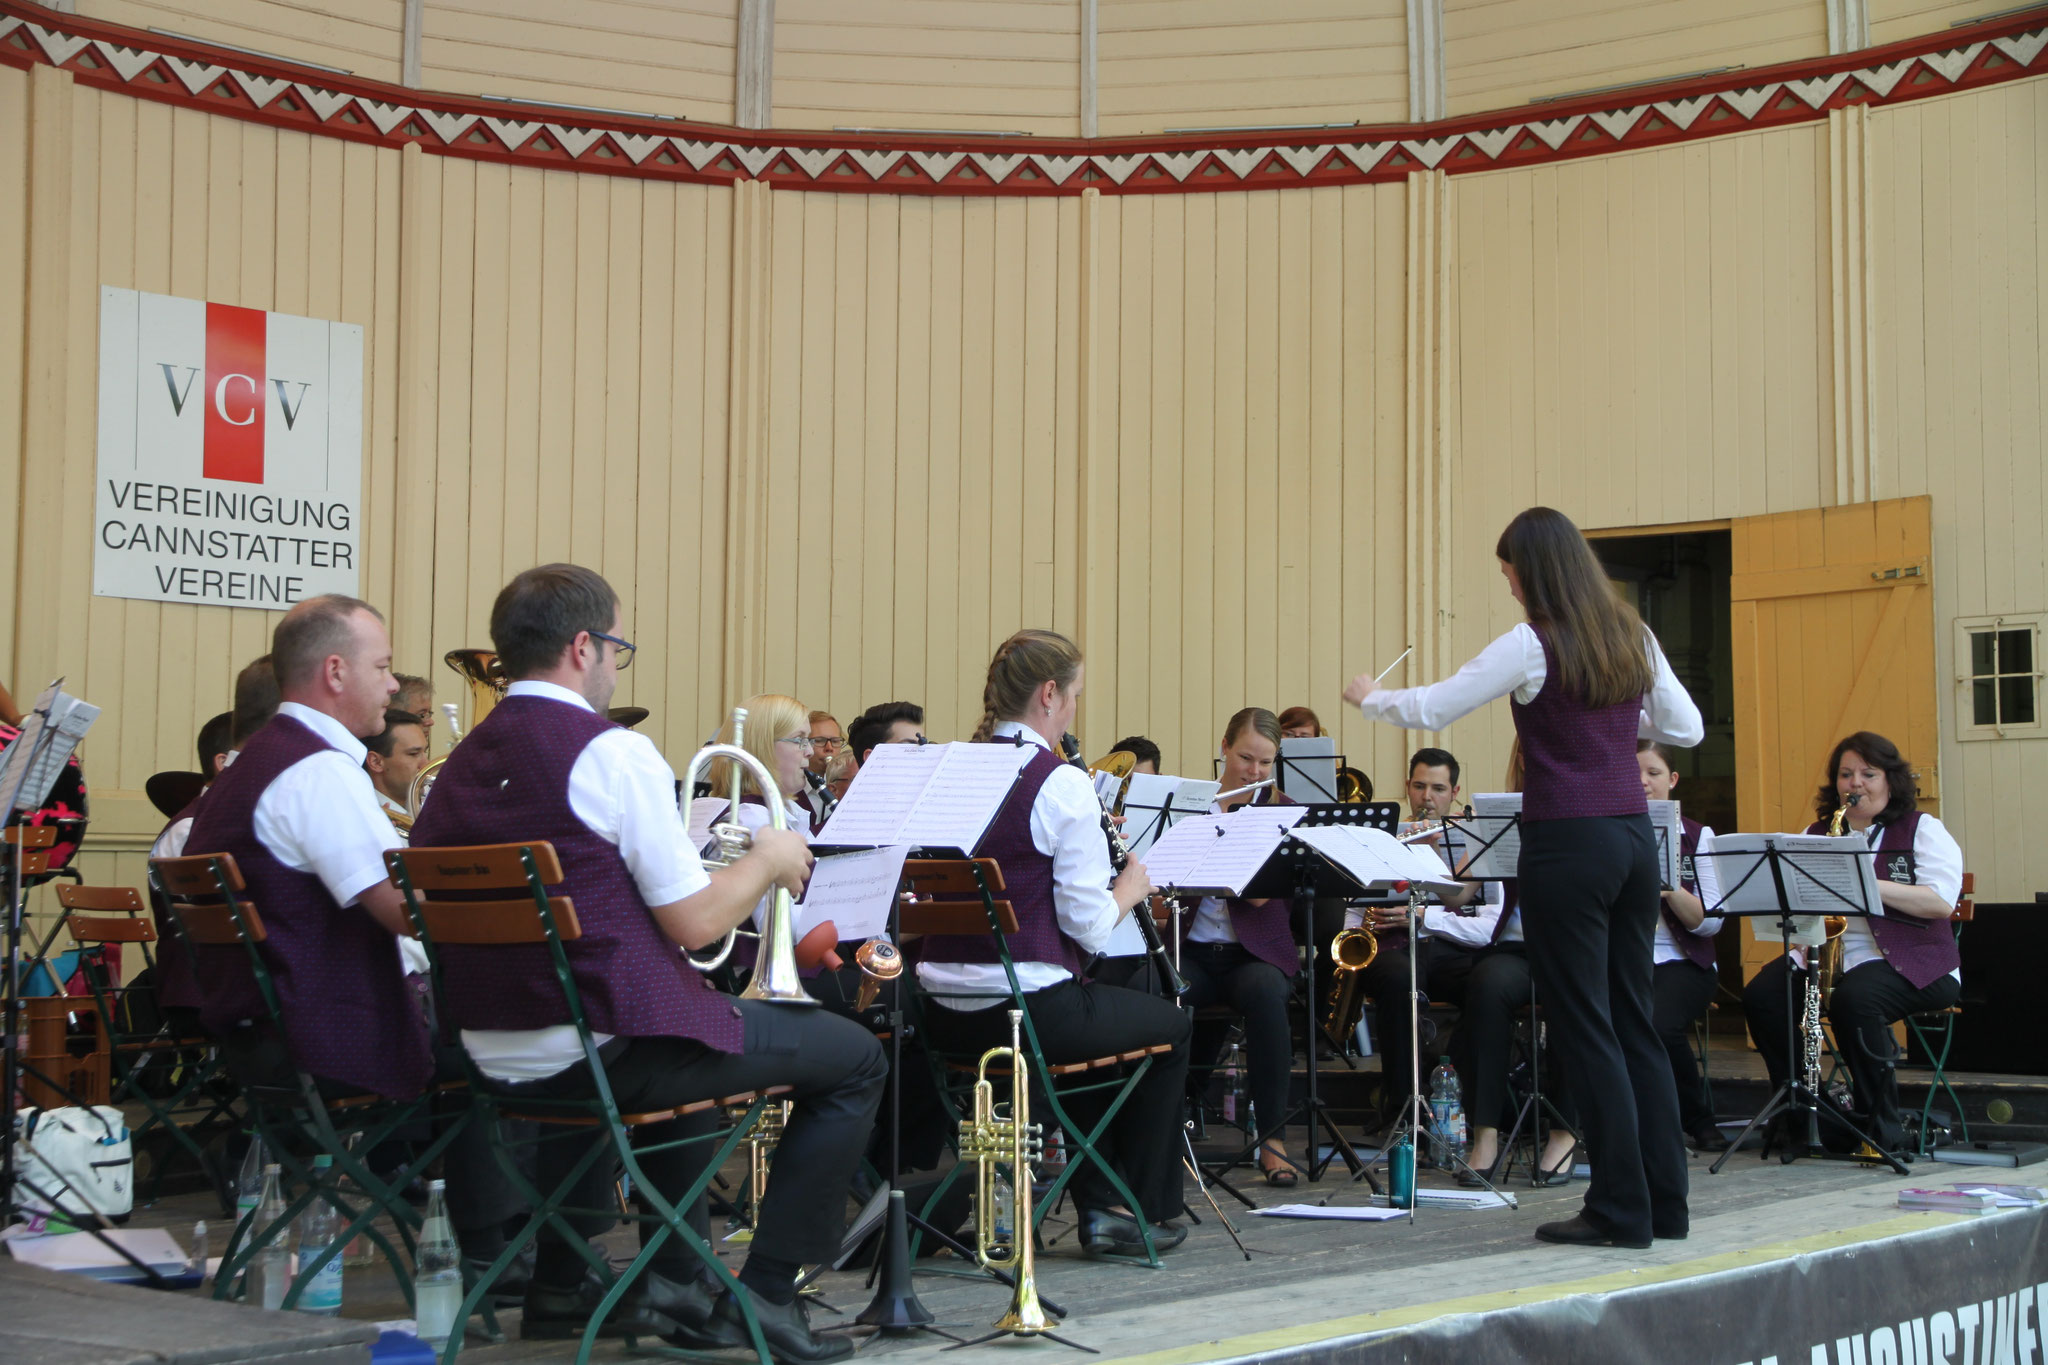 Musikverein Bad Cannstatt